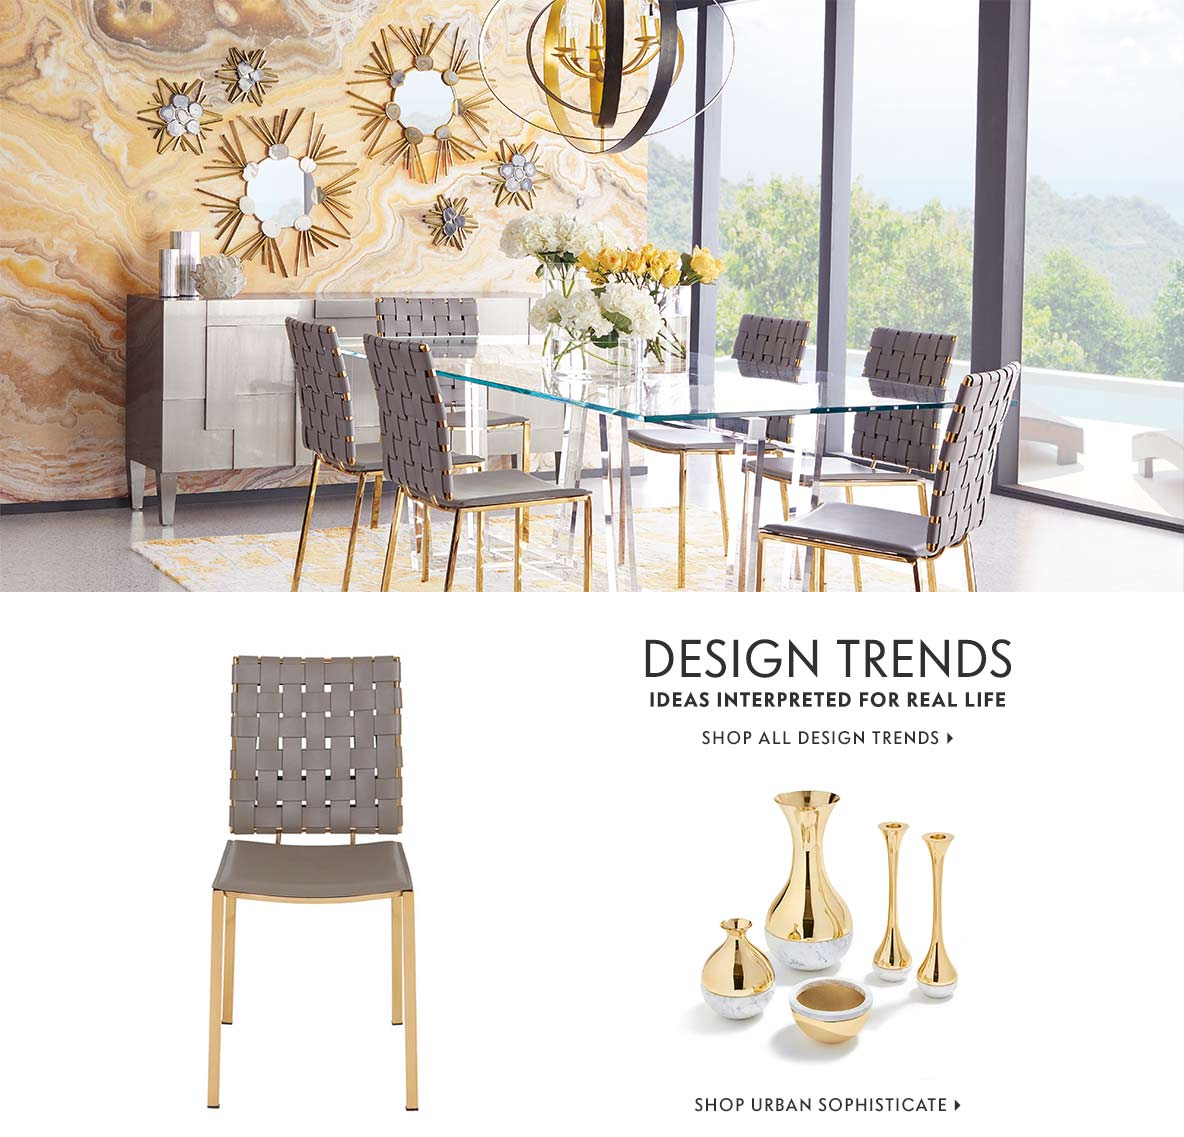 Urban Sophisticate Design Trends